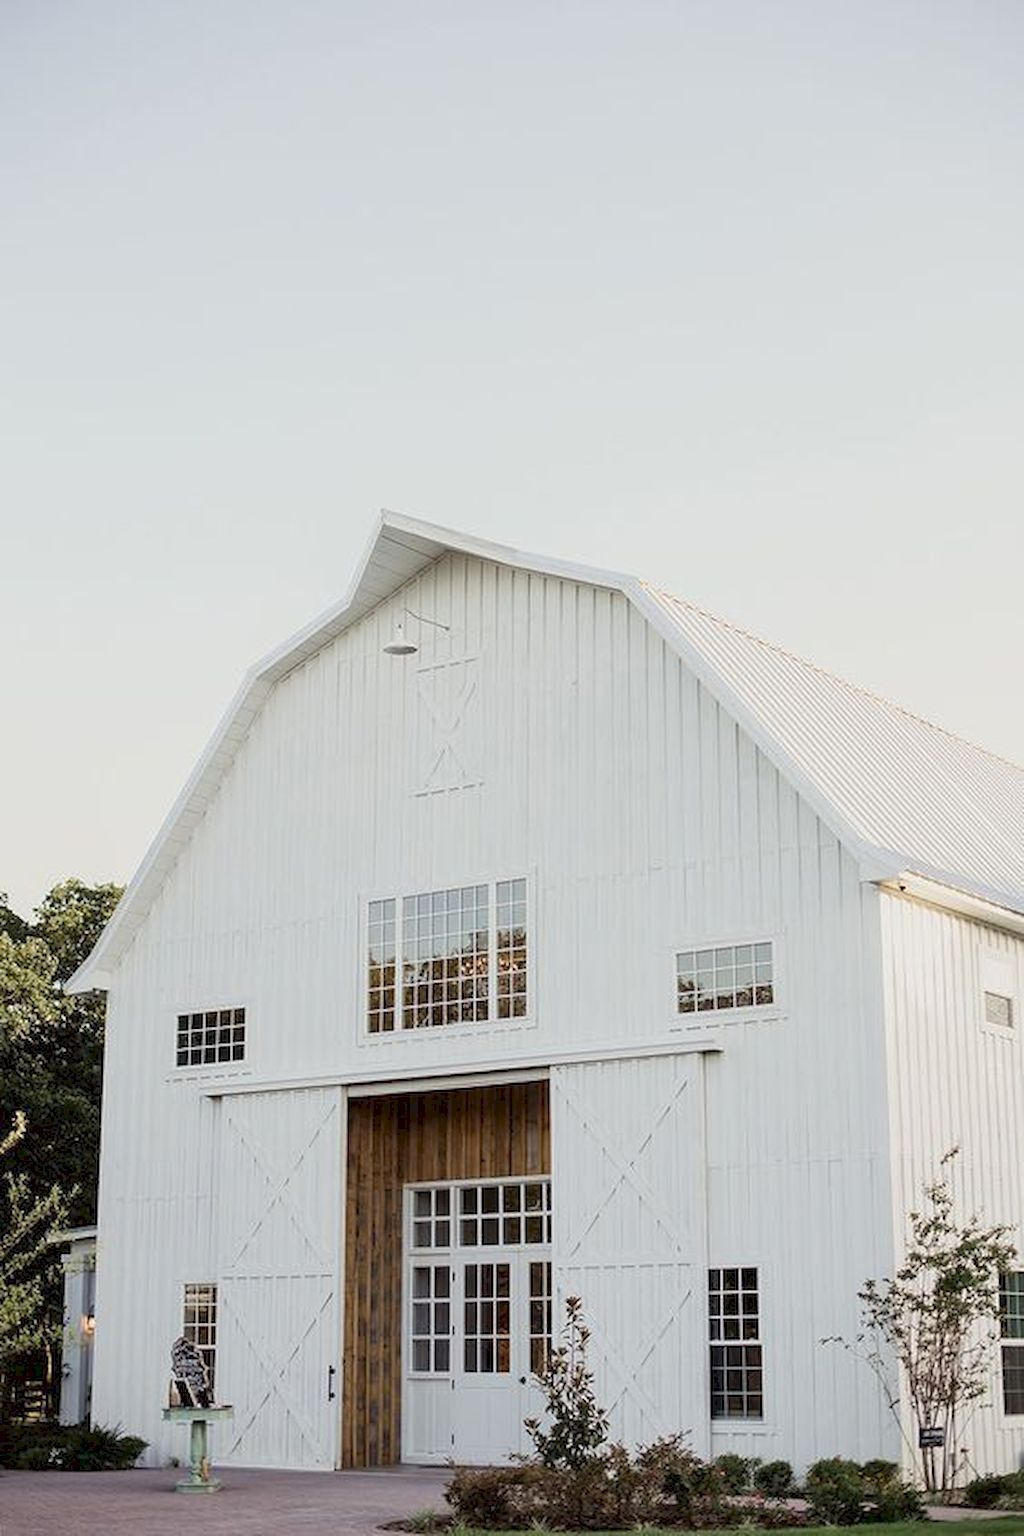 White painted Barn Exterior